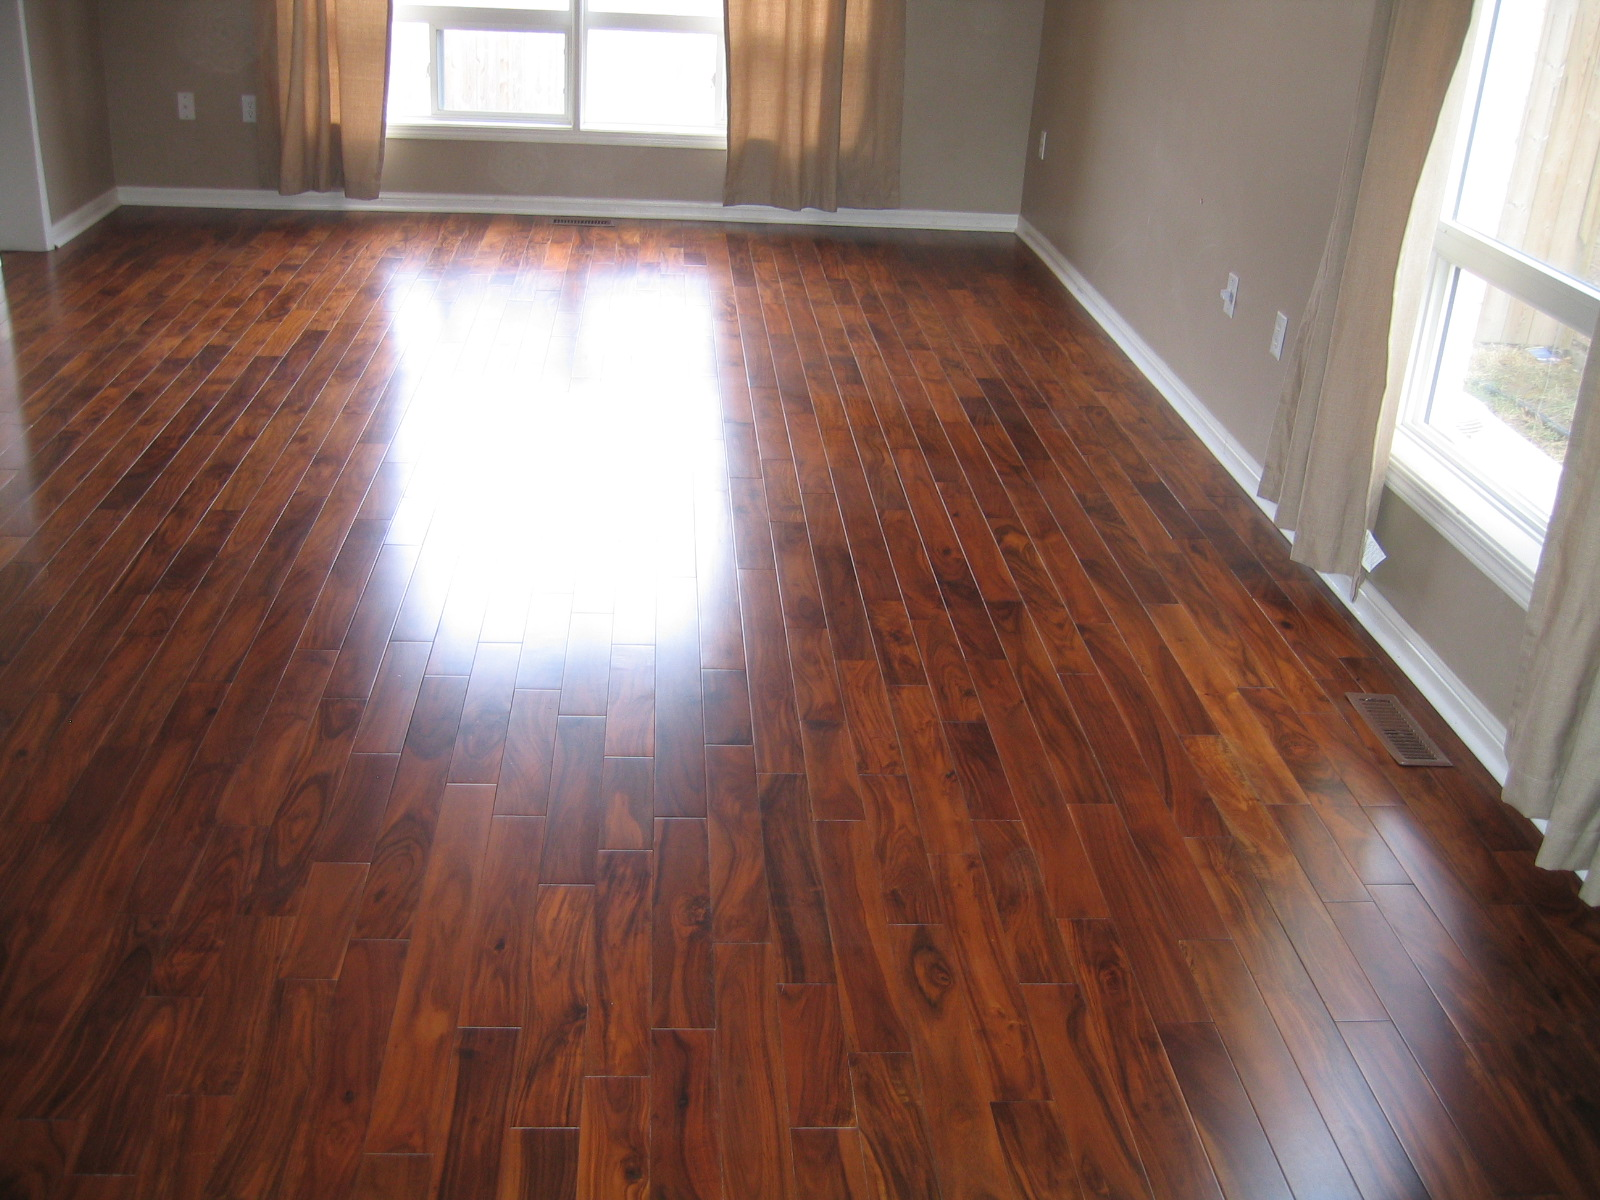 Bamboo hardwood floor installation dartex contracting for Where to get hardwood floors